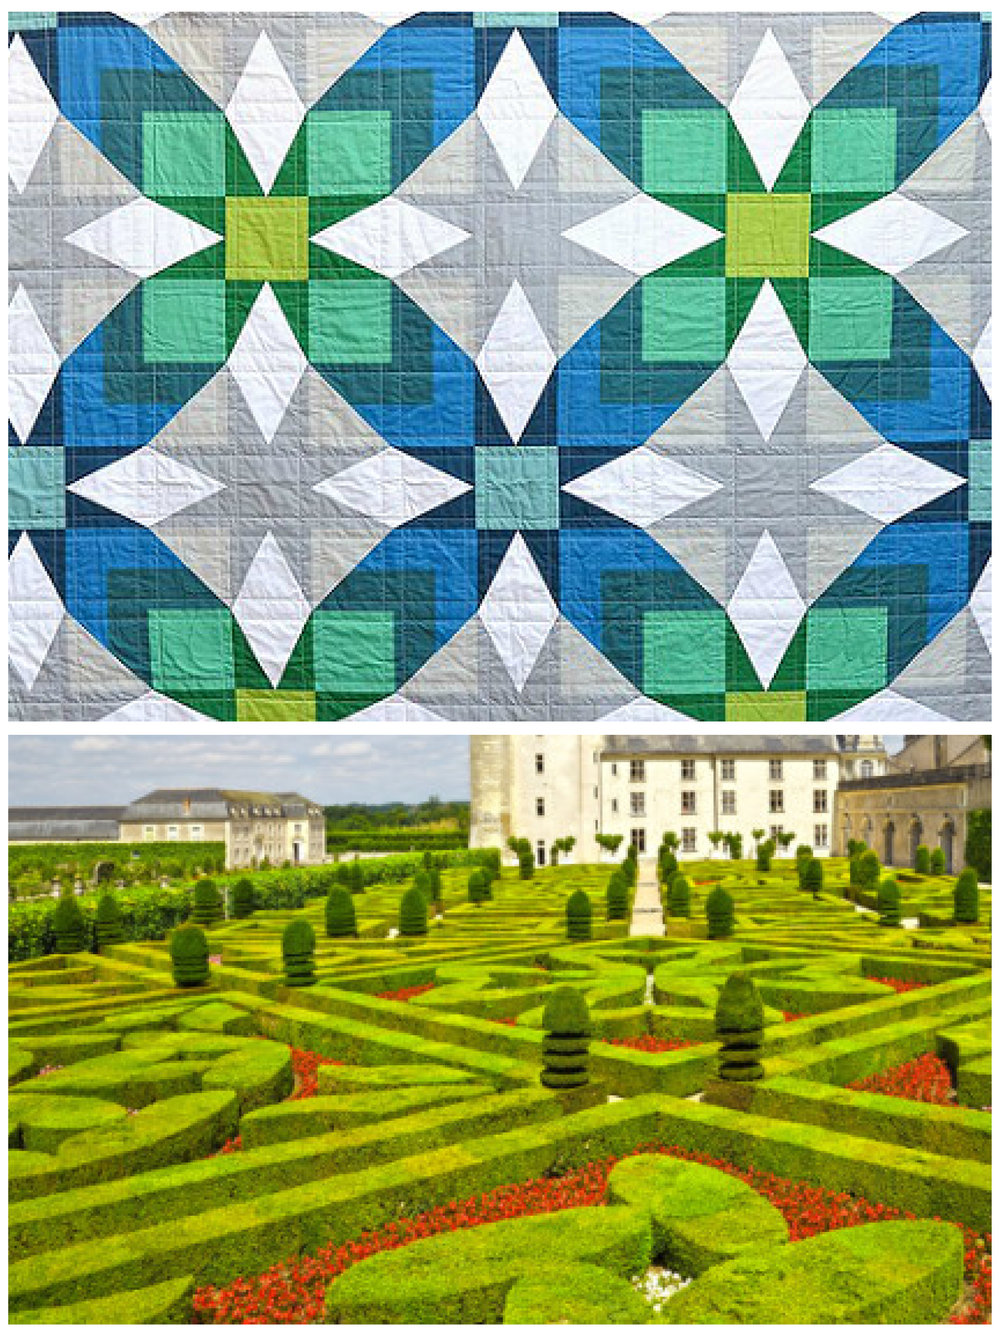 quilt_french castle garden-brooch inspiration_CG Sculpture Jewelry.jpg